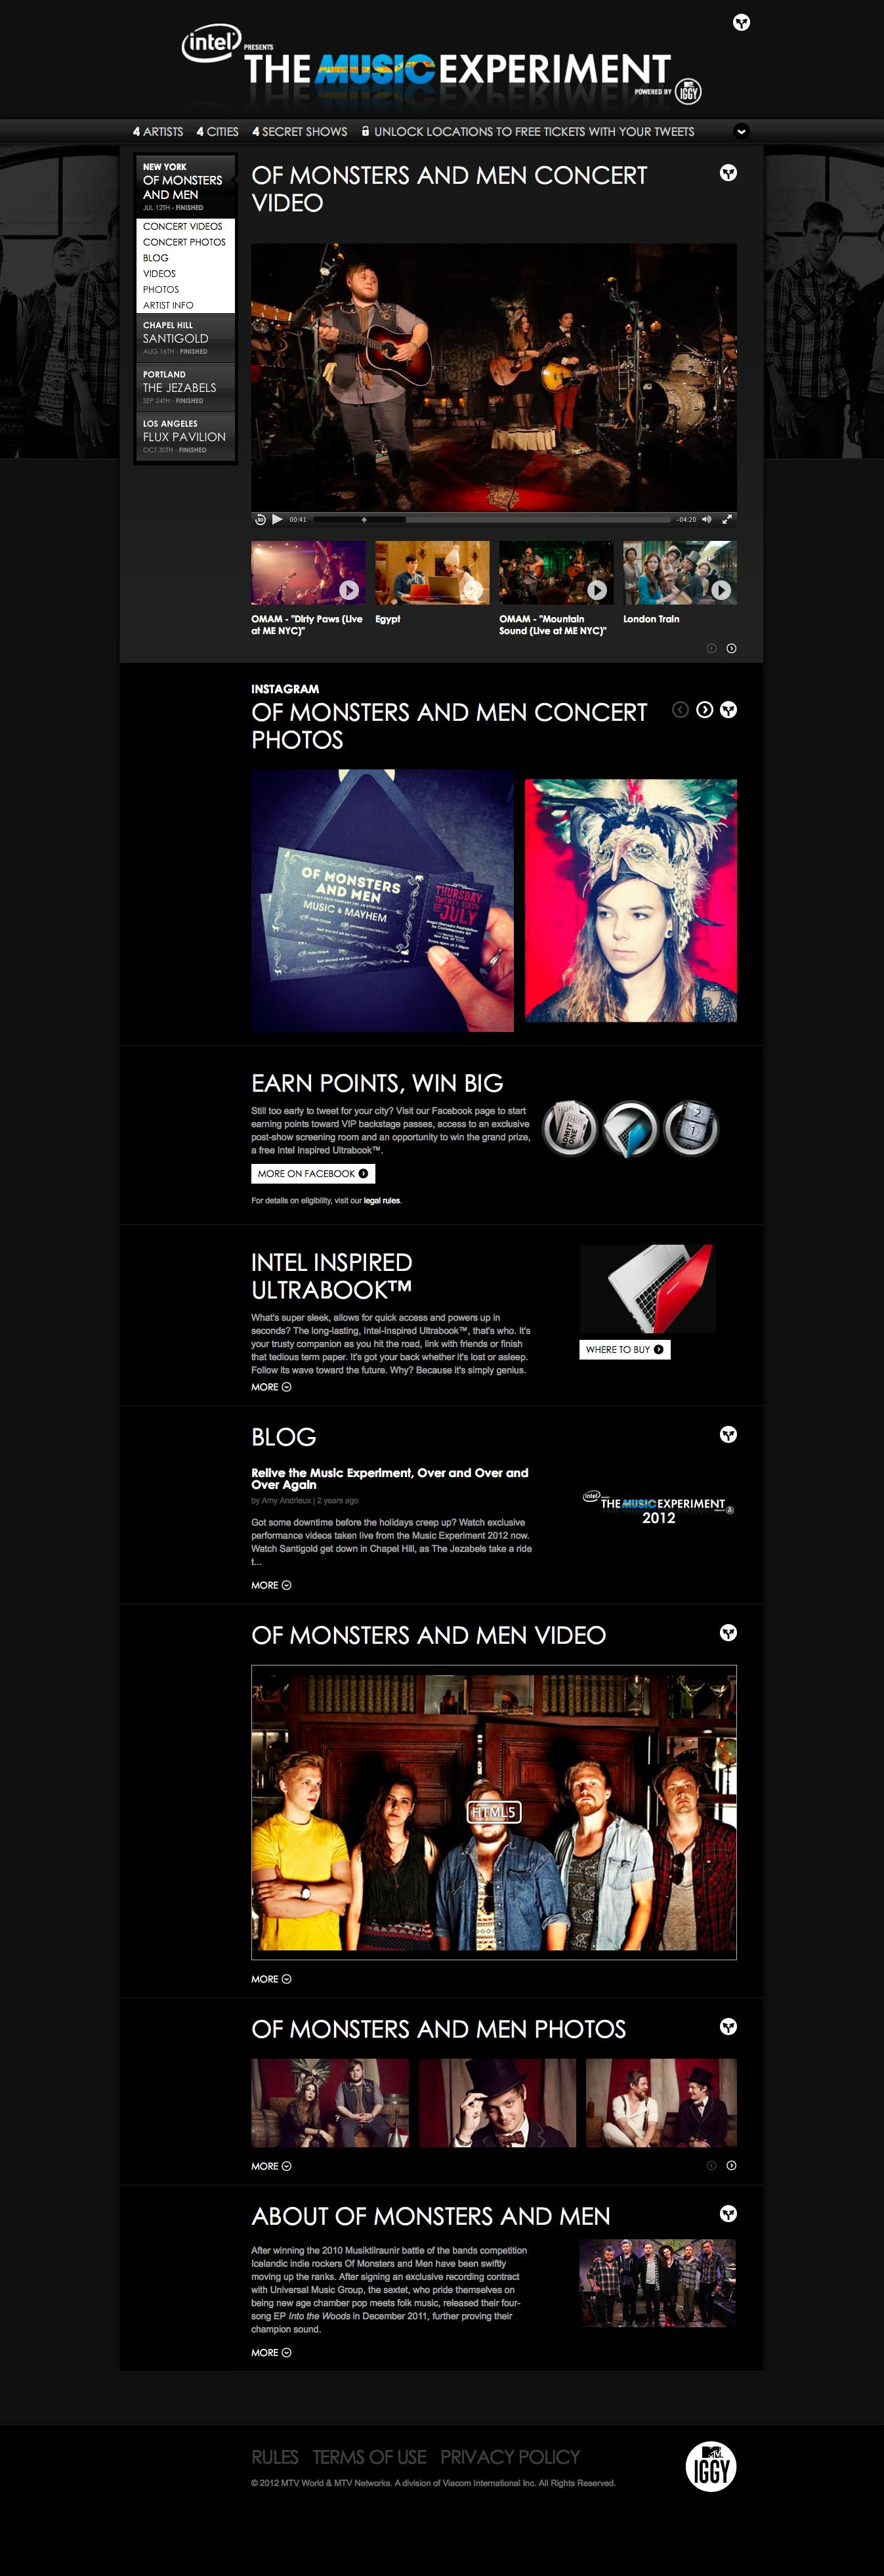 MTV Iggy's The MusicExperiment - Desktop, Tablet, & Mobile Design with Omnigon